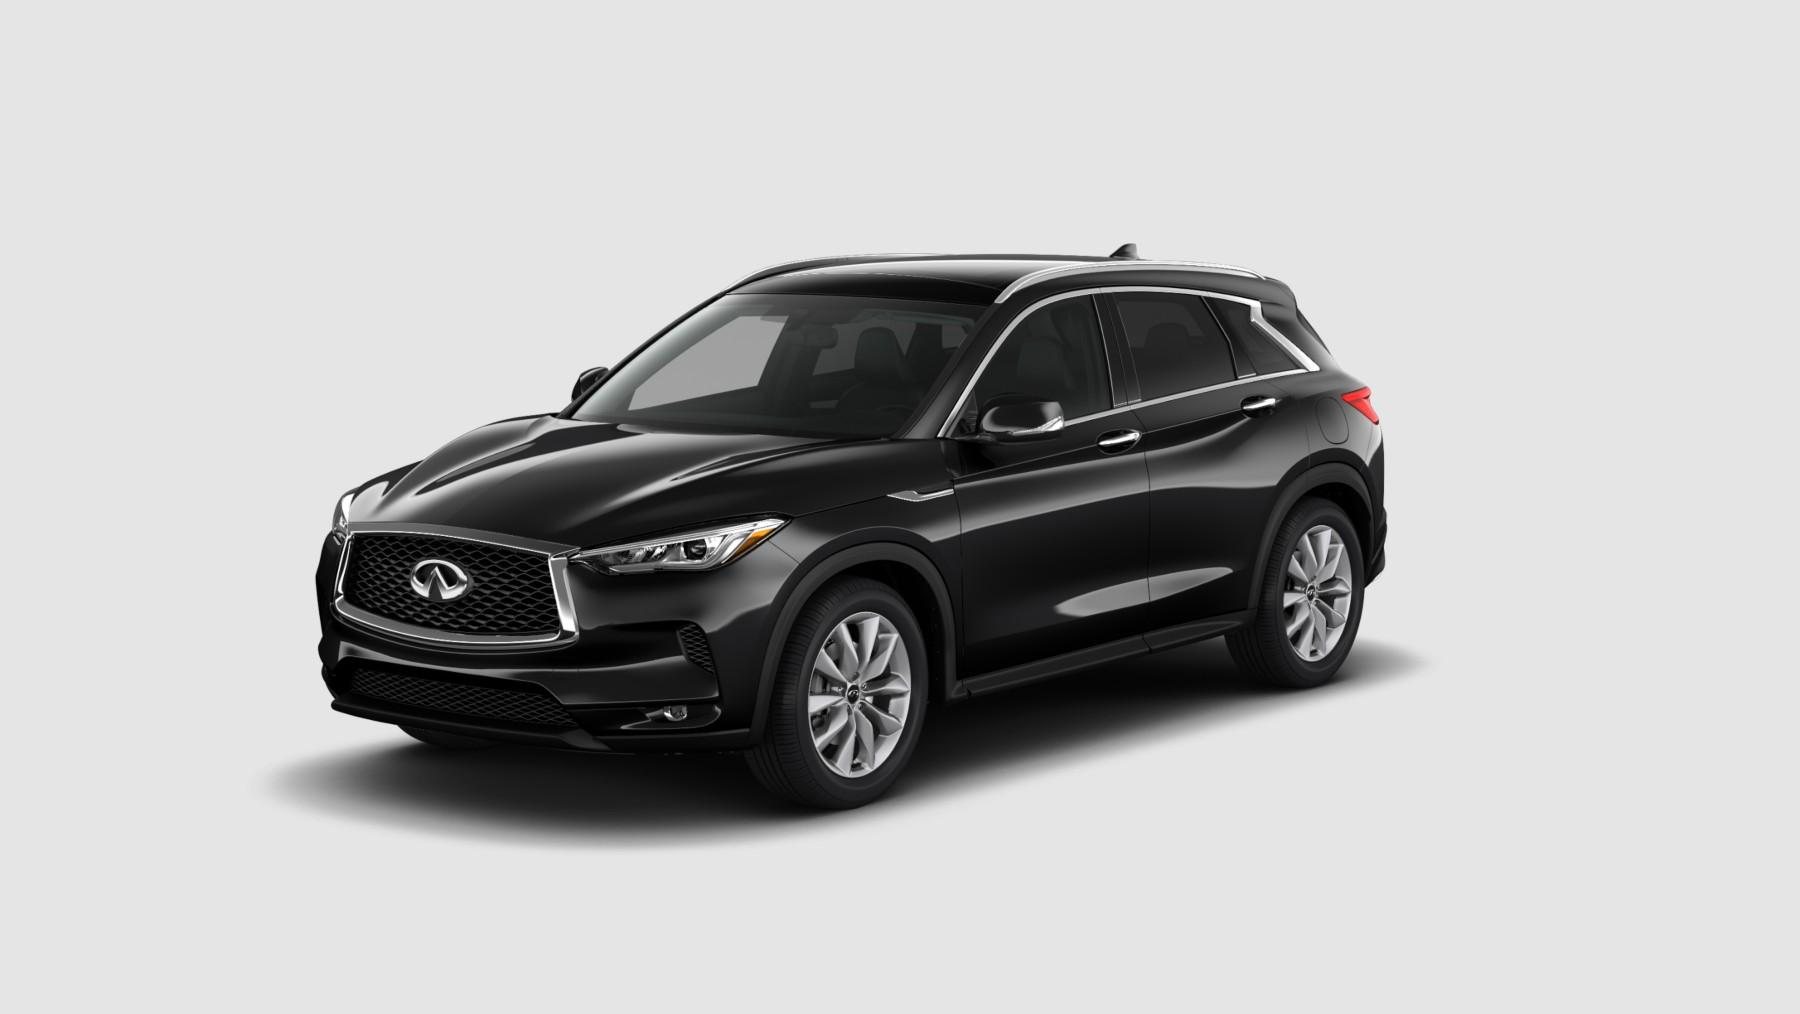 2019 Infiniti QX50: News, Specs, MPG, Price >> 2019 Infiniti Qx50 Luxe For Sale In Sarasota Vin